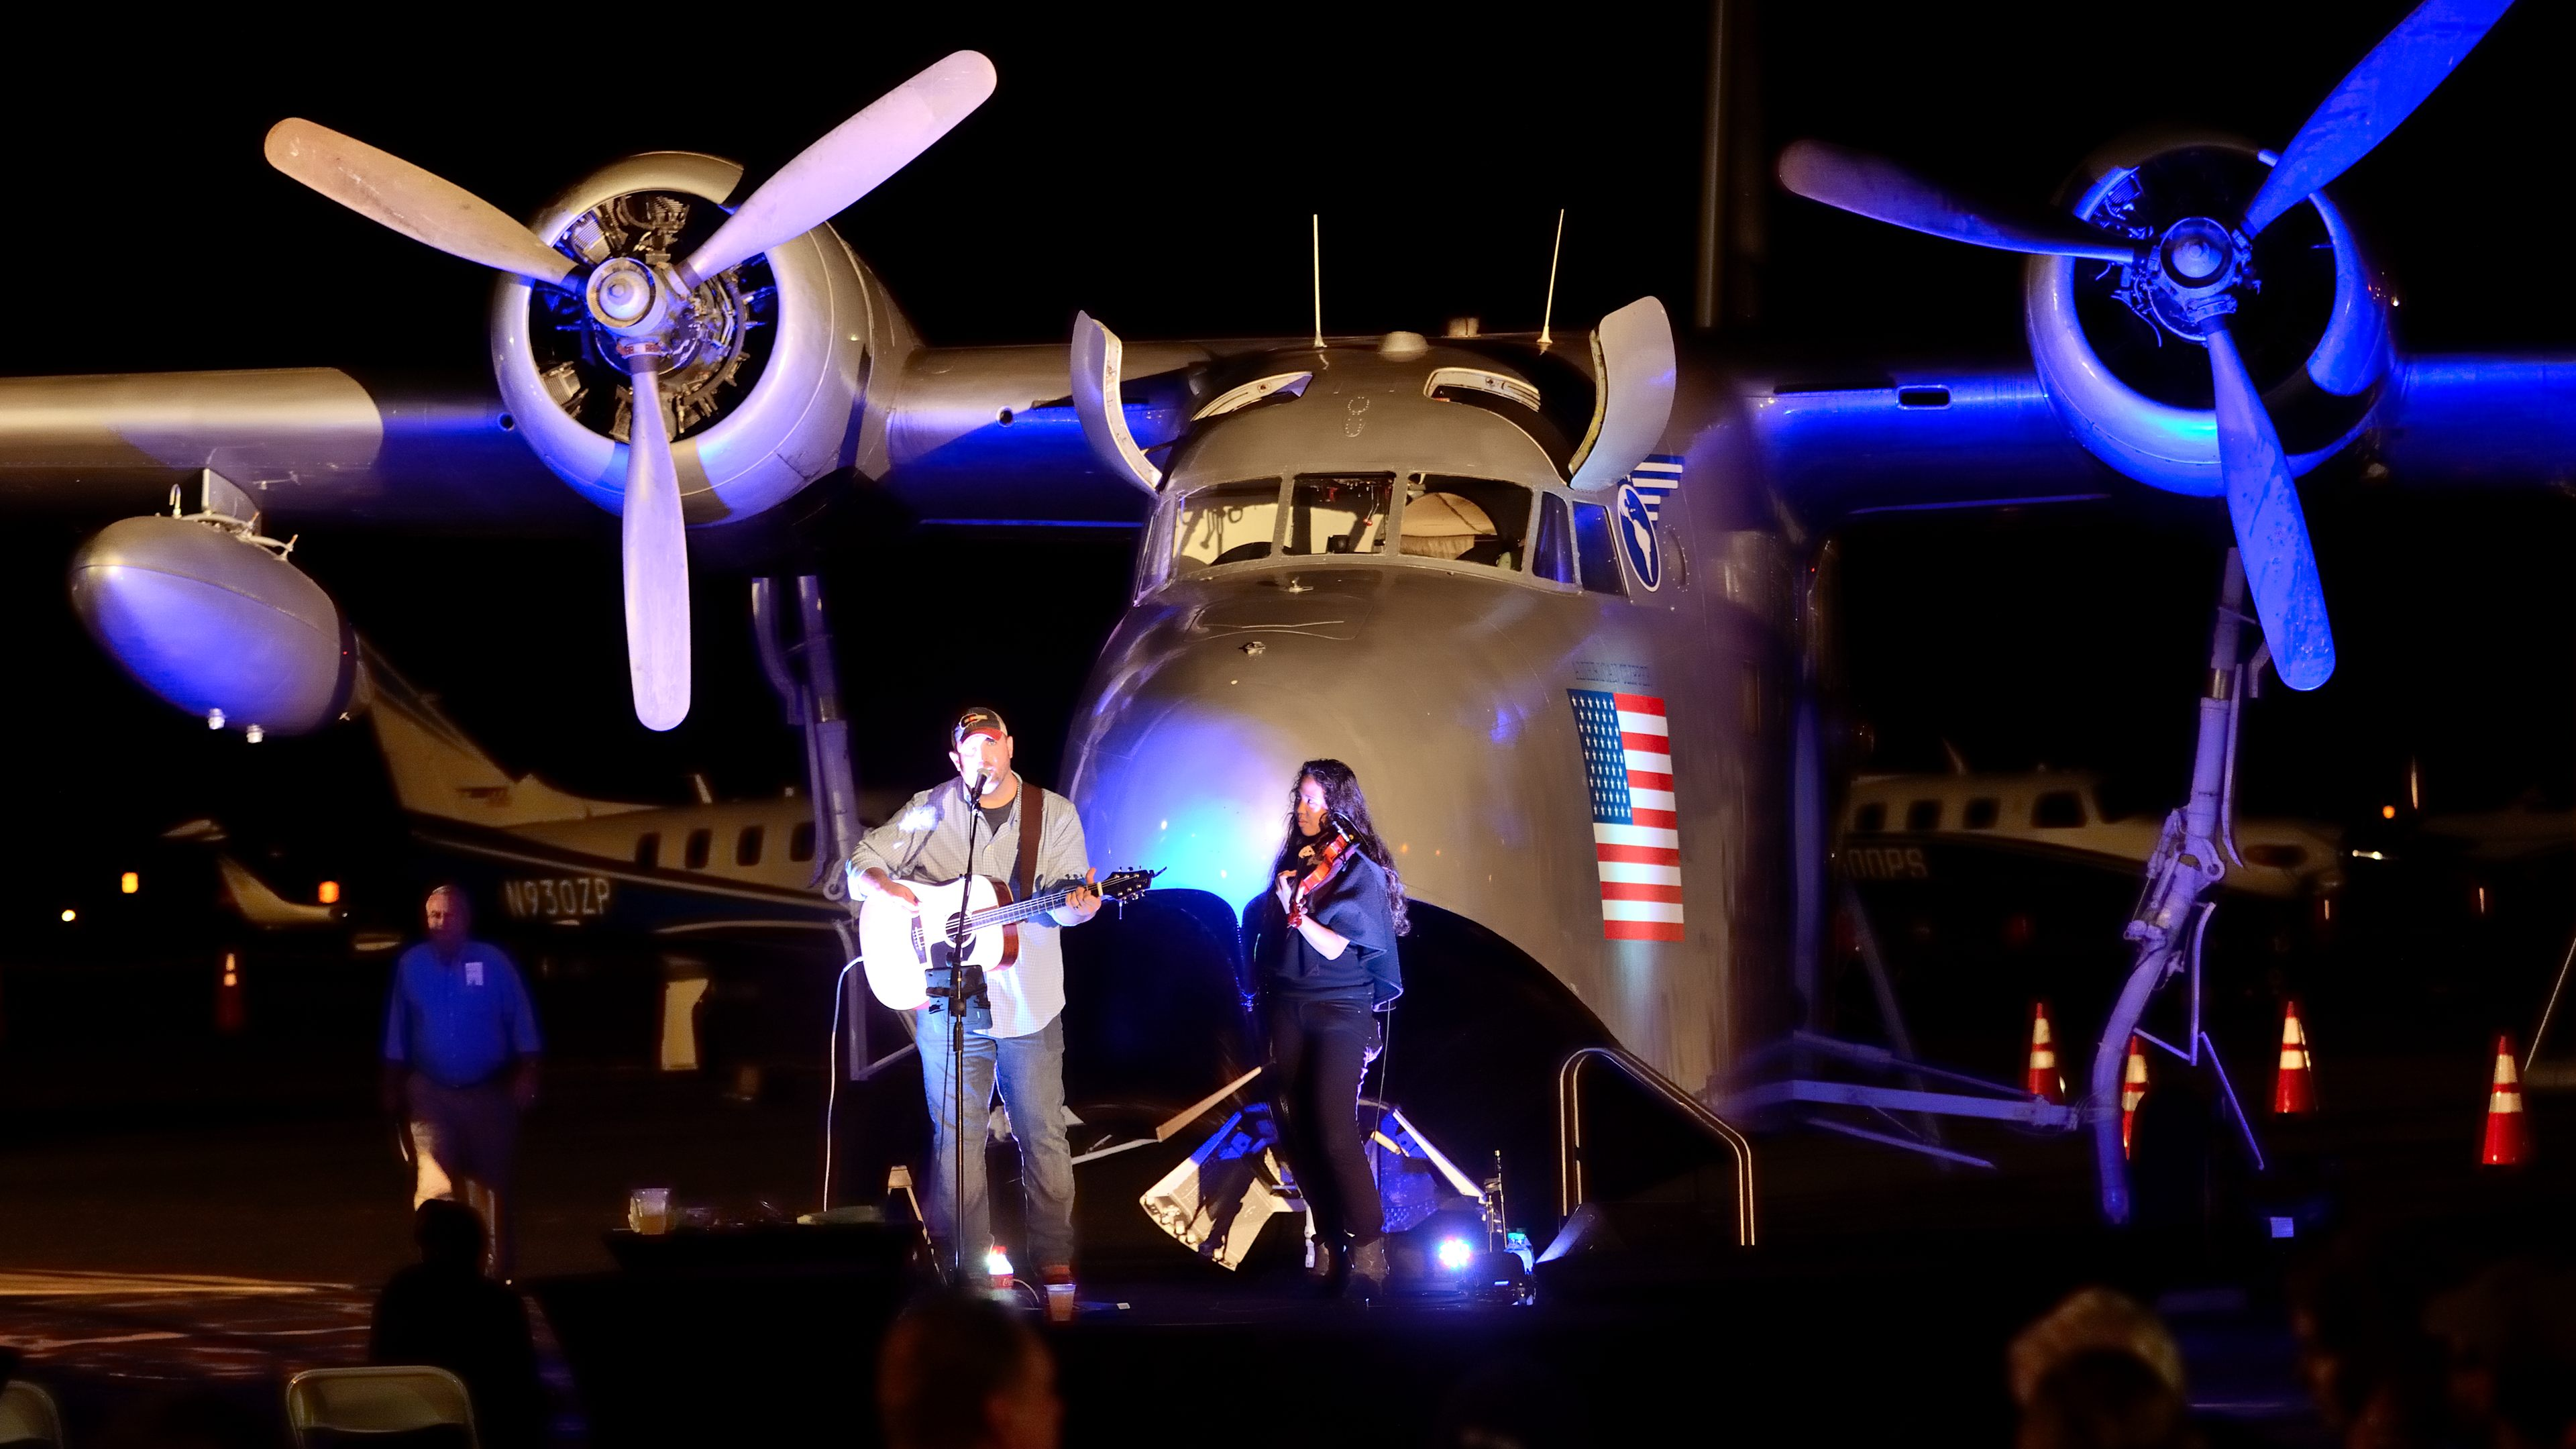 Entertainment for the Barnstormers Party at AOPA's 2017 Groton Fly-In, the Jonathan Moody Band, takes the stage--strategically positioned in front of a restored Grumman Albatross. Photo by Mike Collins.